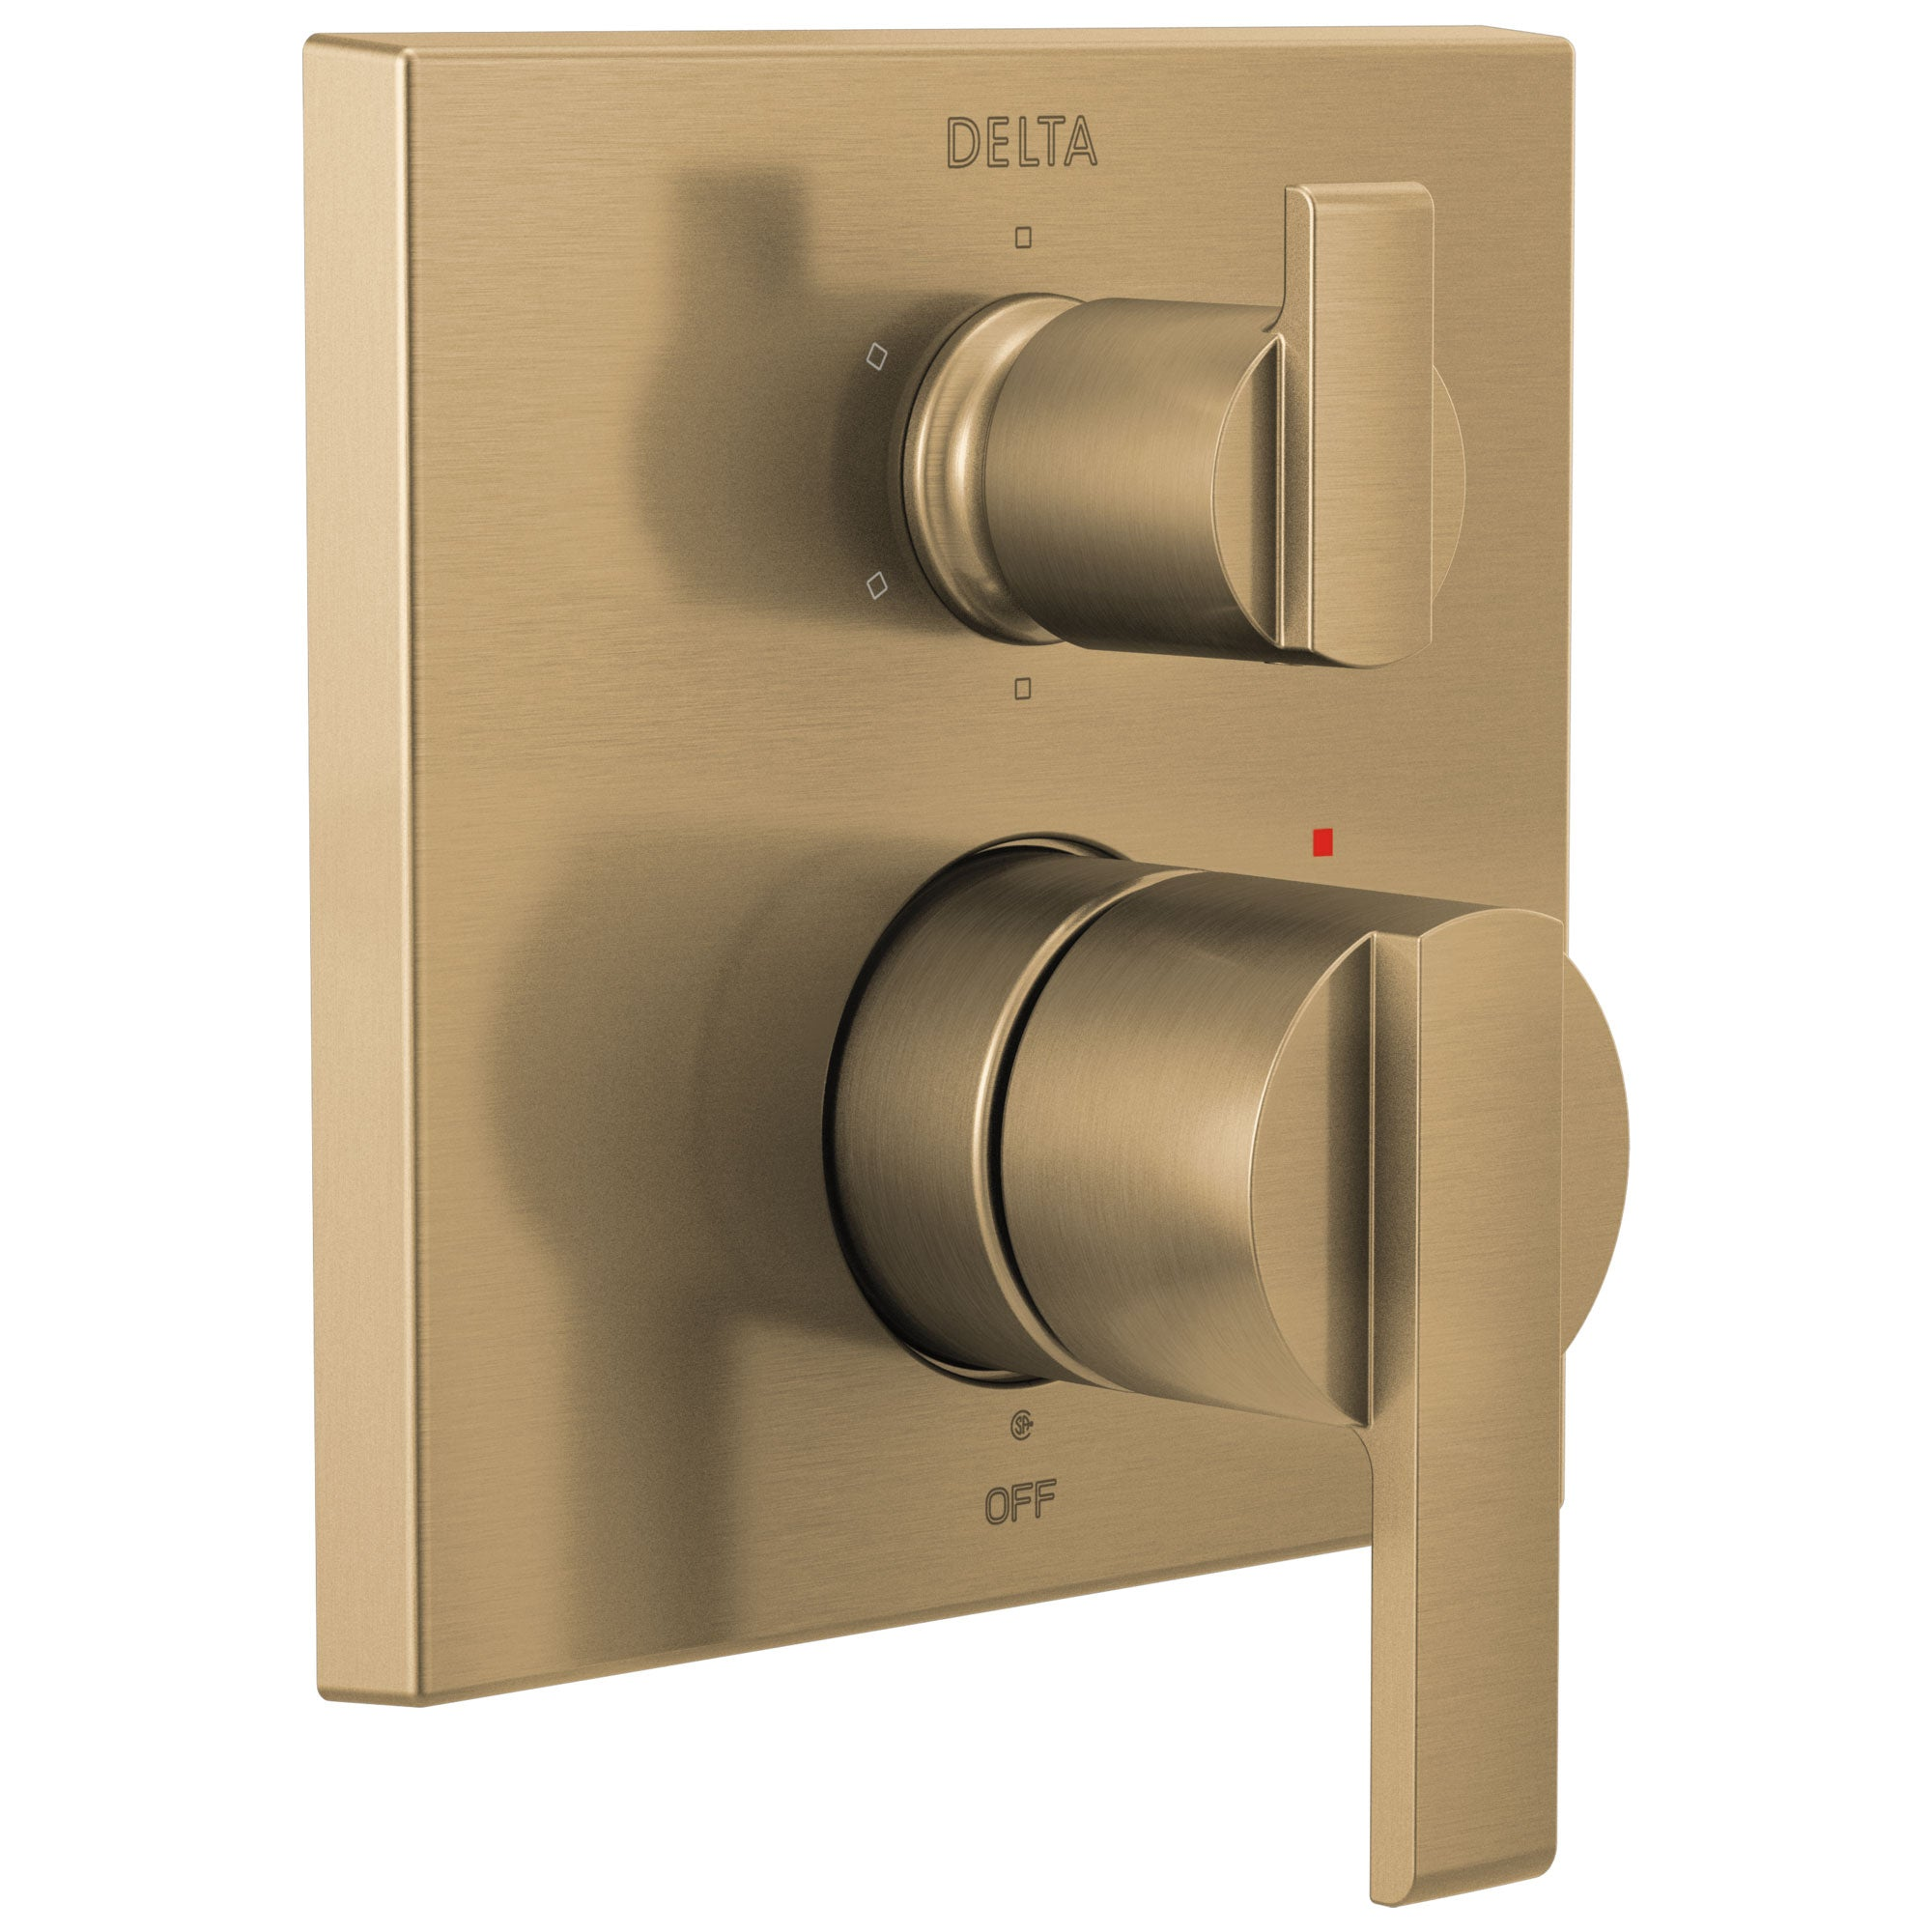 Delta Ara Champagne Bronze Finish Angular Modern 14 Series Shower System Control with 6-Setting Integrated Diverter Includes Valve and Handles D3755V